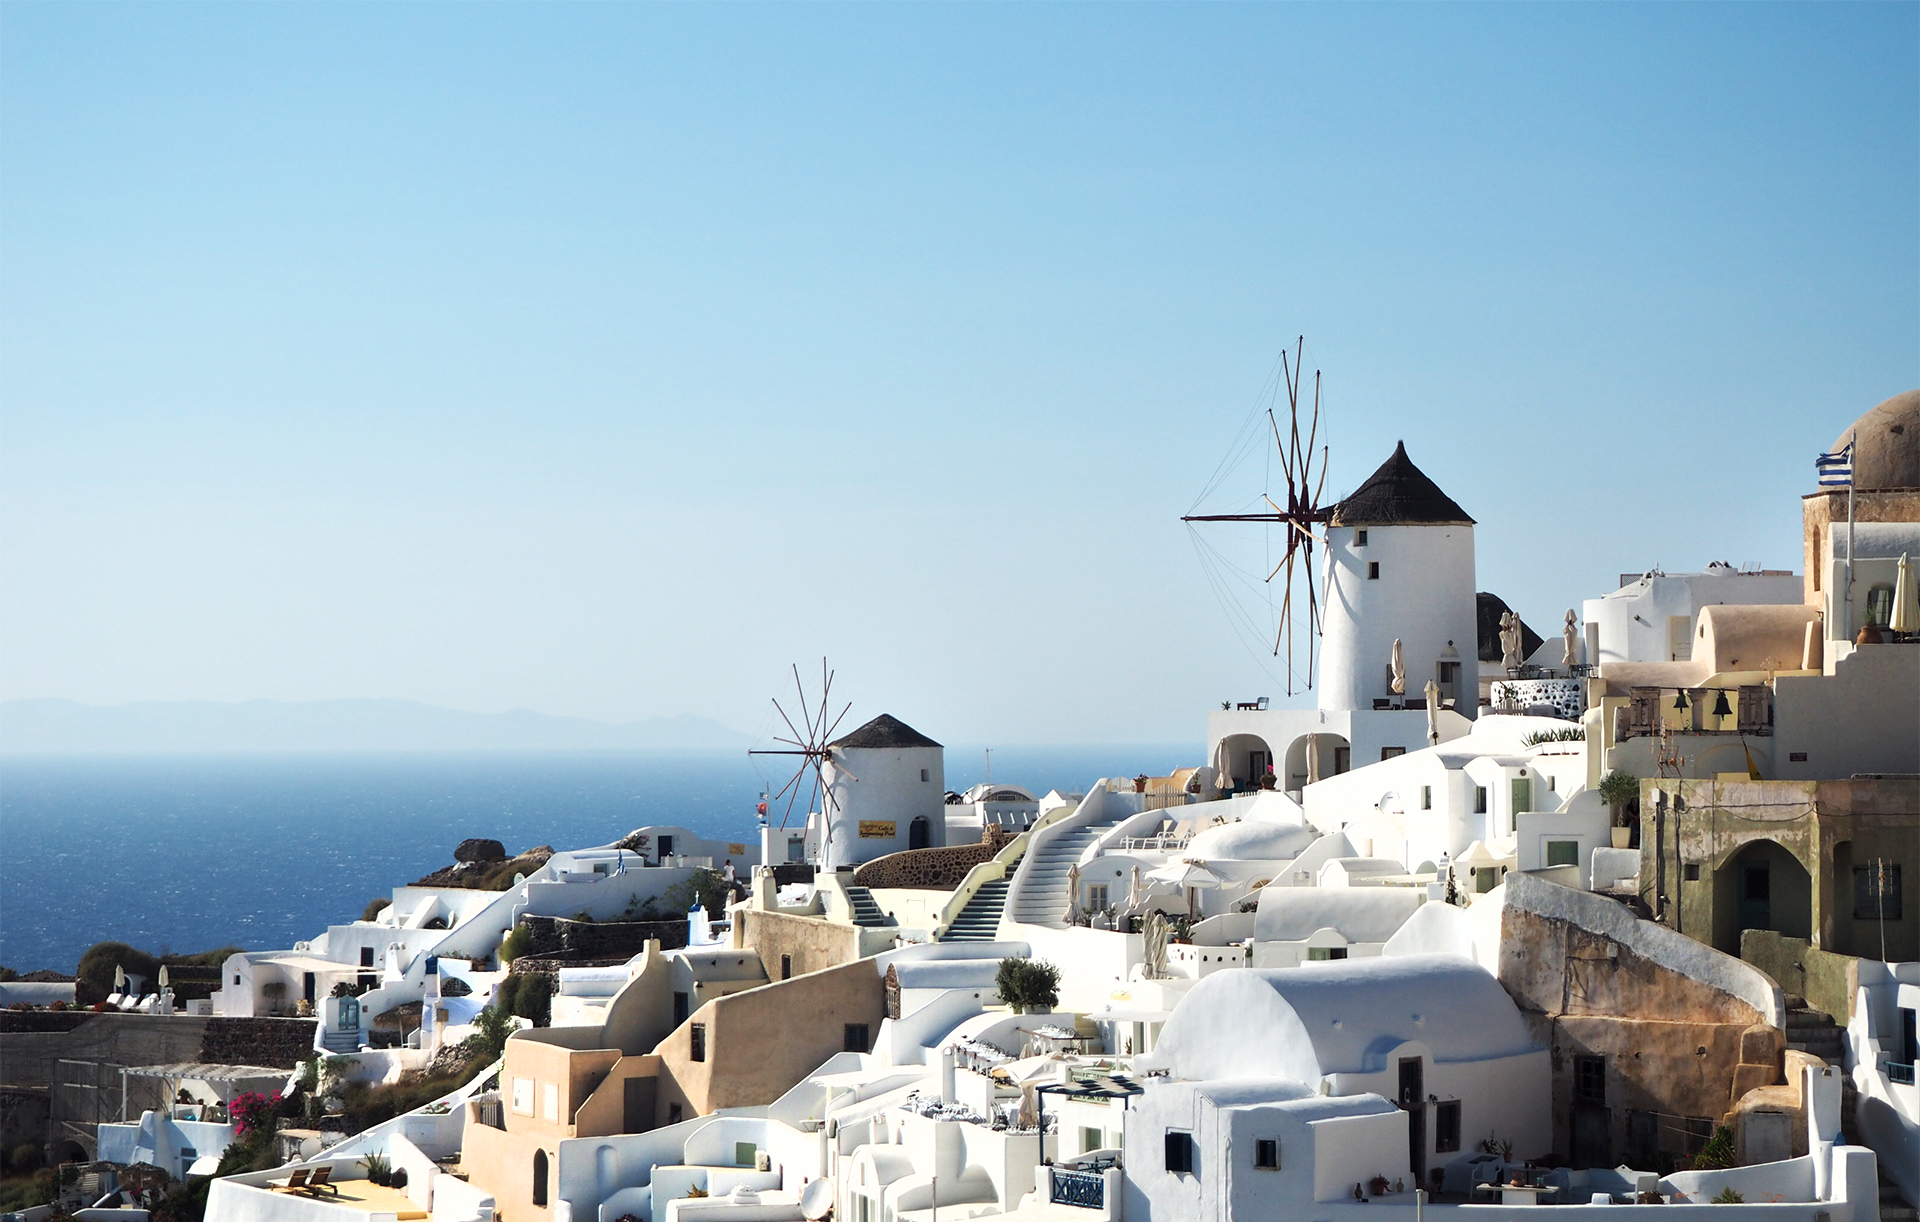 Greek Island Destination - Santorini, view of white greek architecture with windmills overlooking the caldera